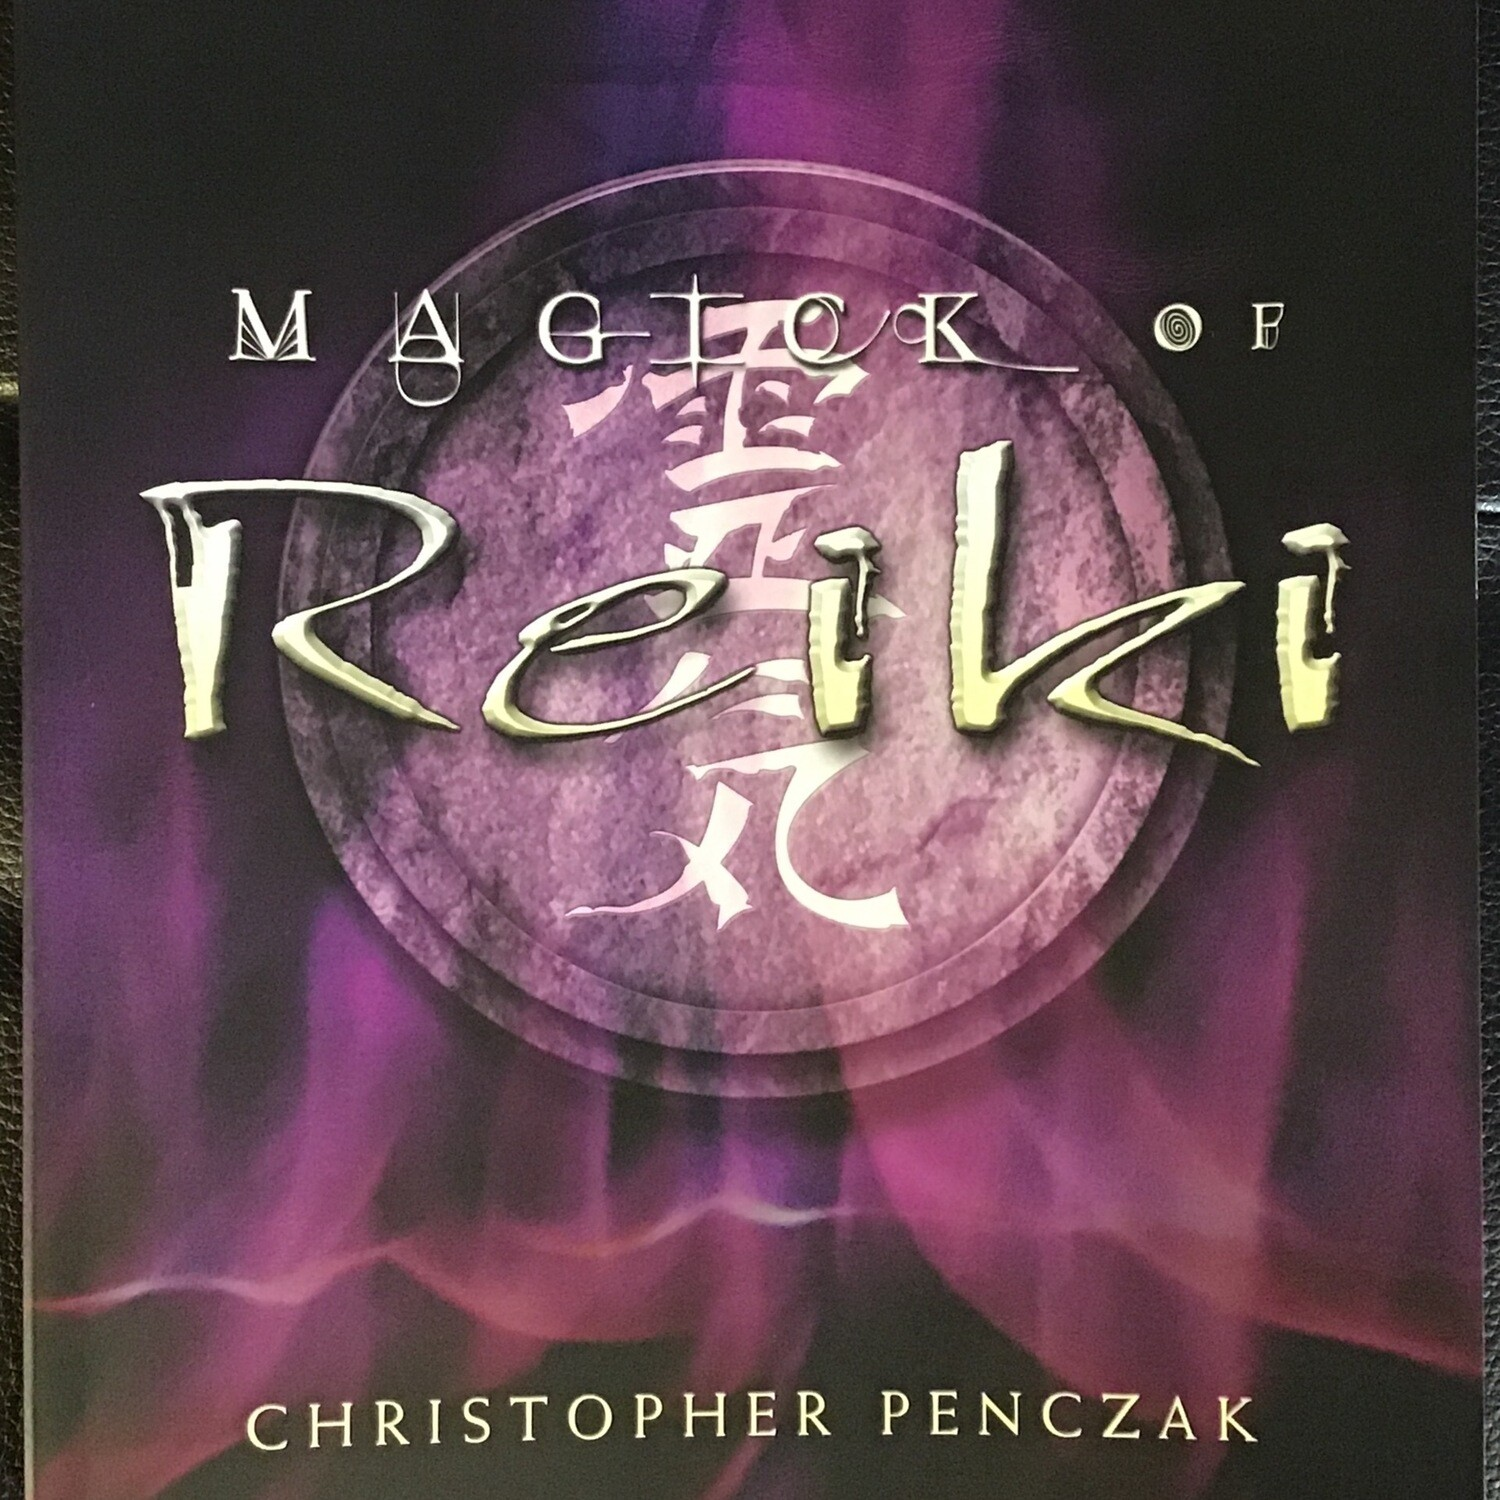 The Magic of Reiki by Christopher Penczak